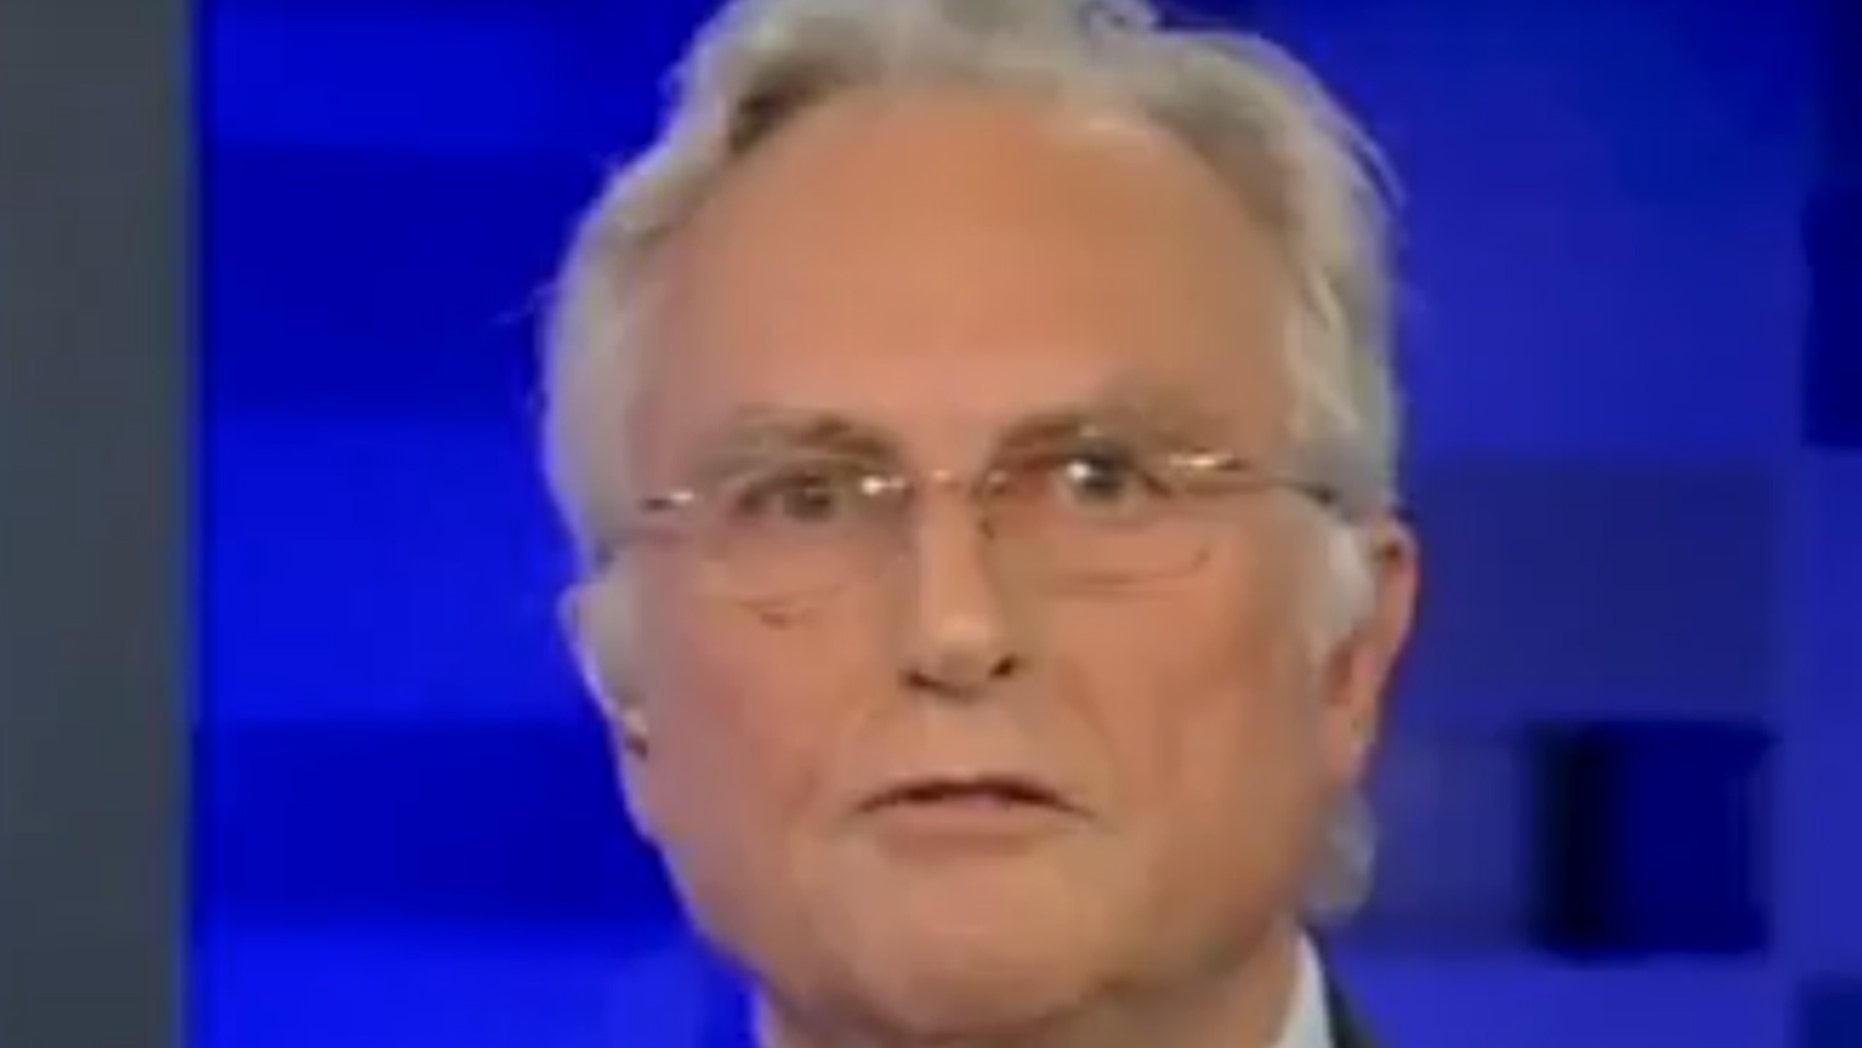 Atheist Richard Dawkins warns against celebrating the demise of Christianity in Europe.